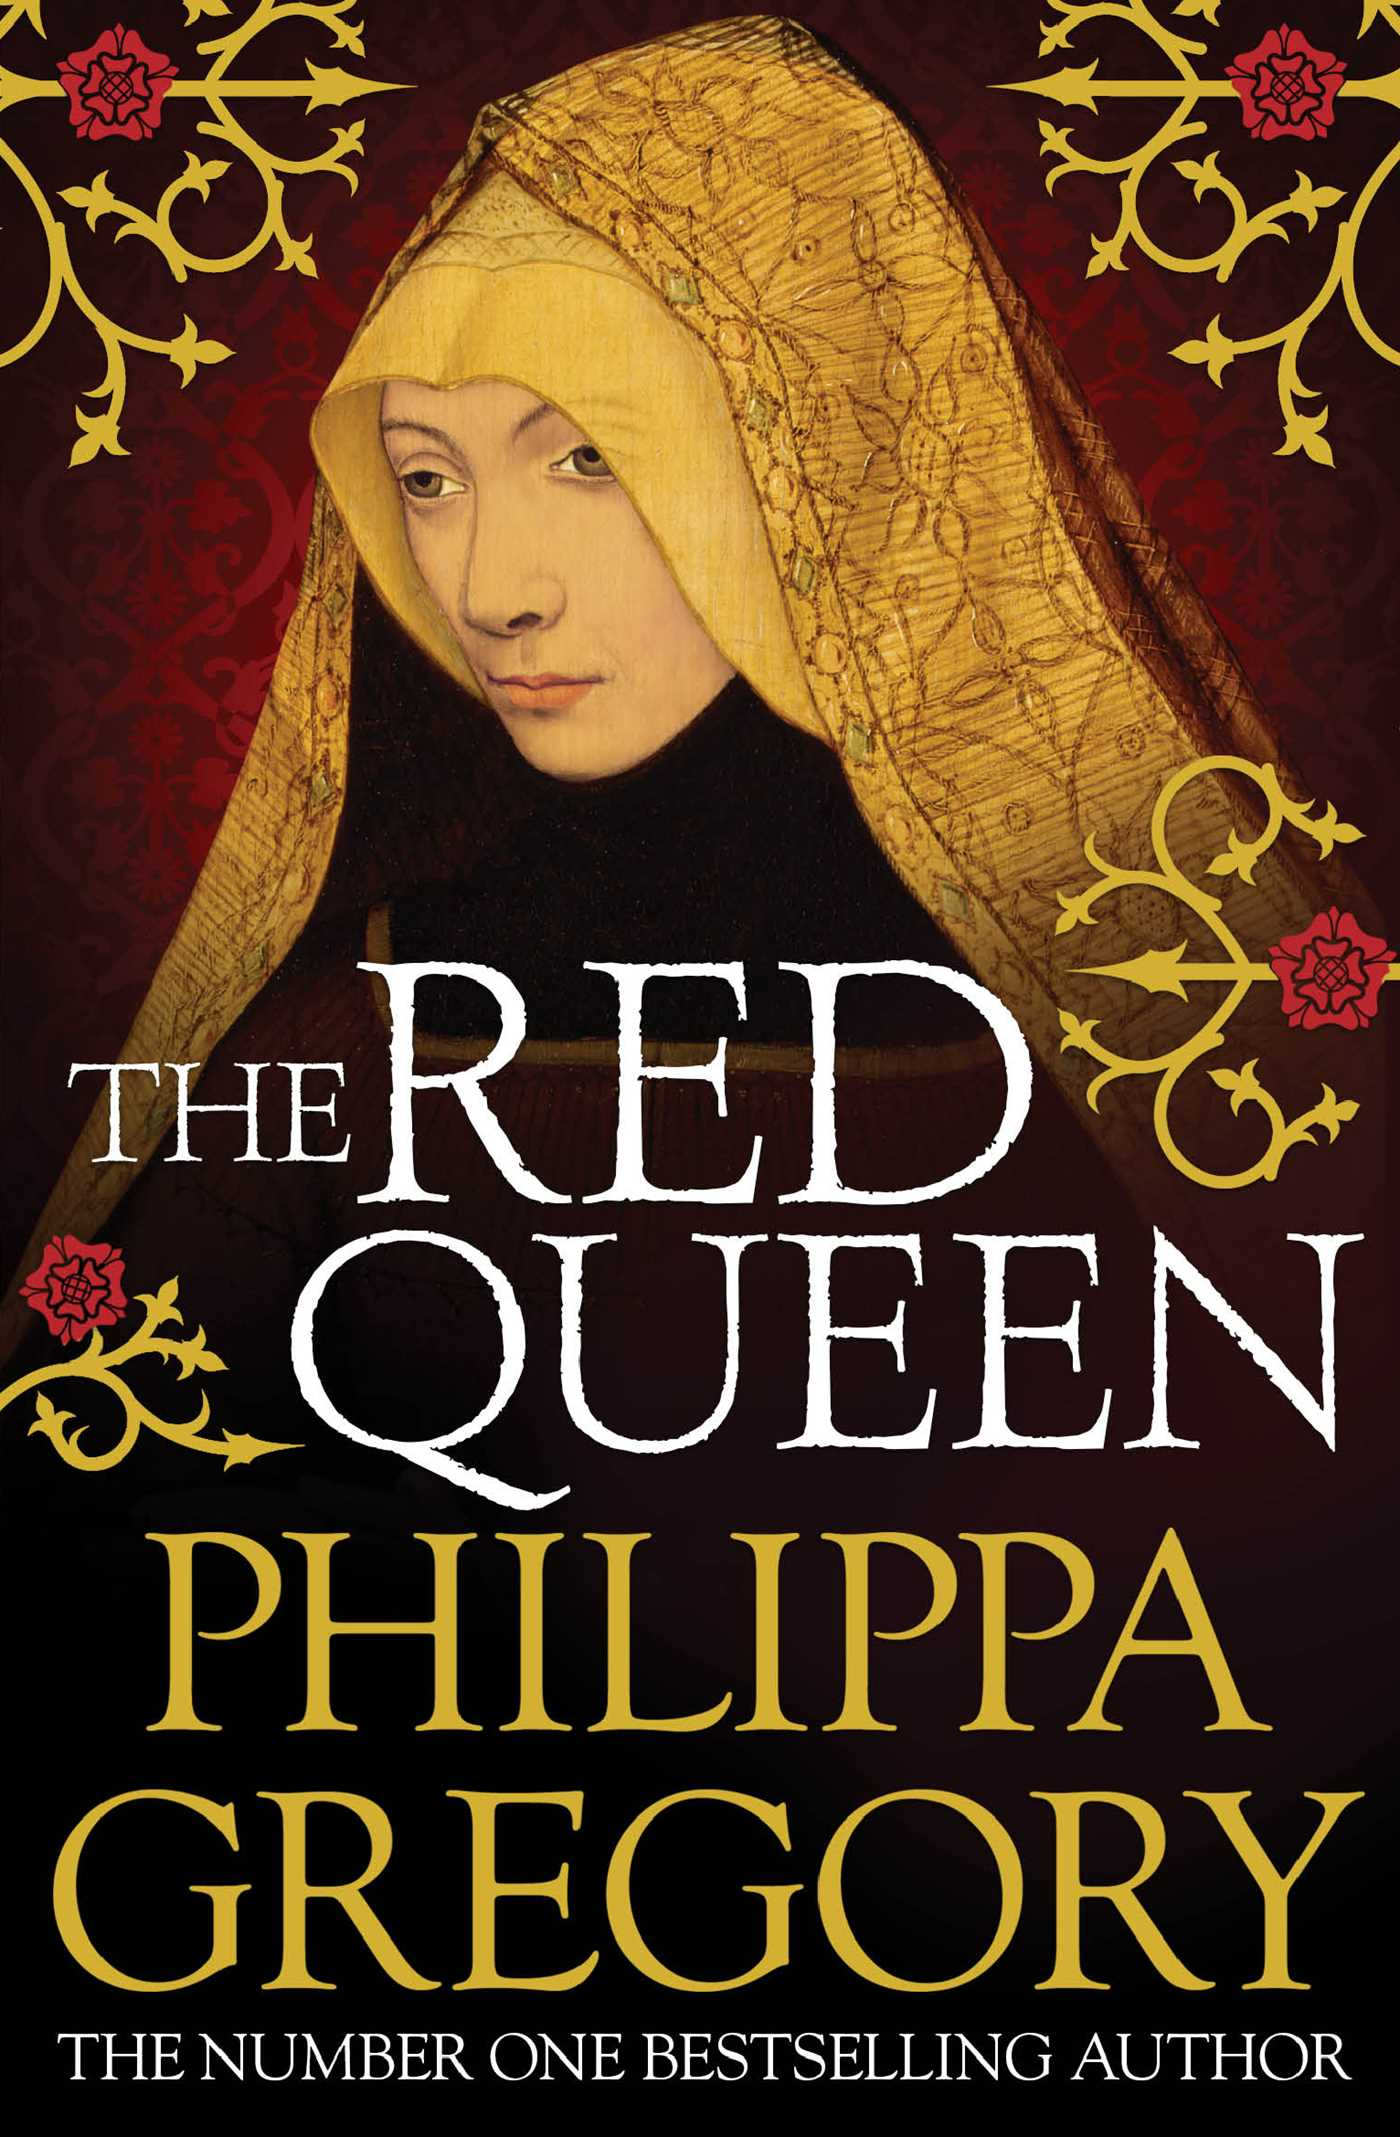 The red queen 9781847394651 hr